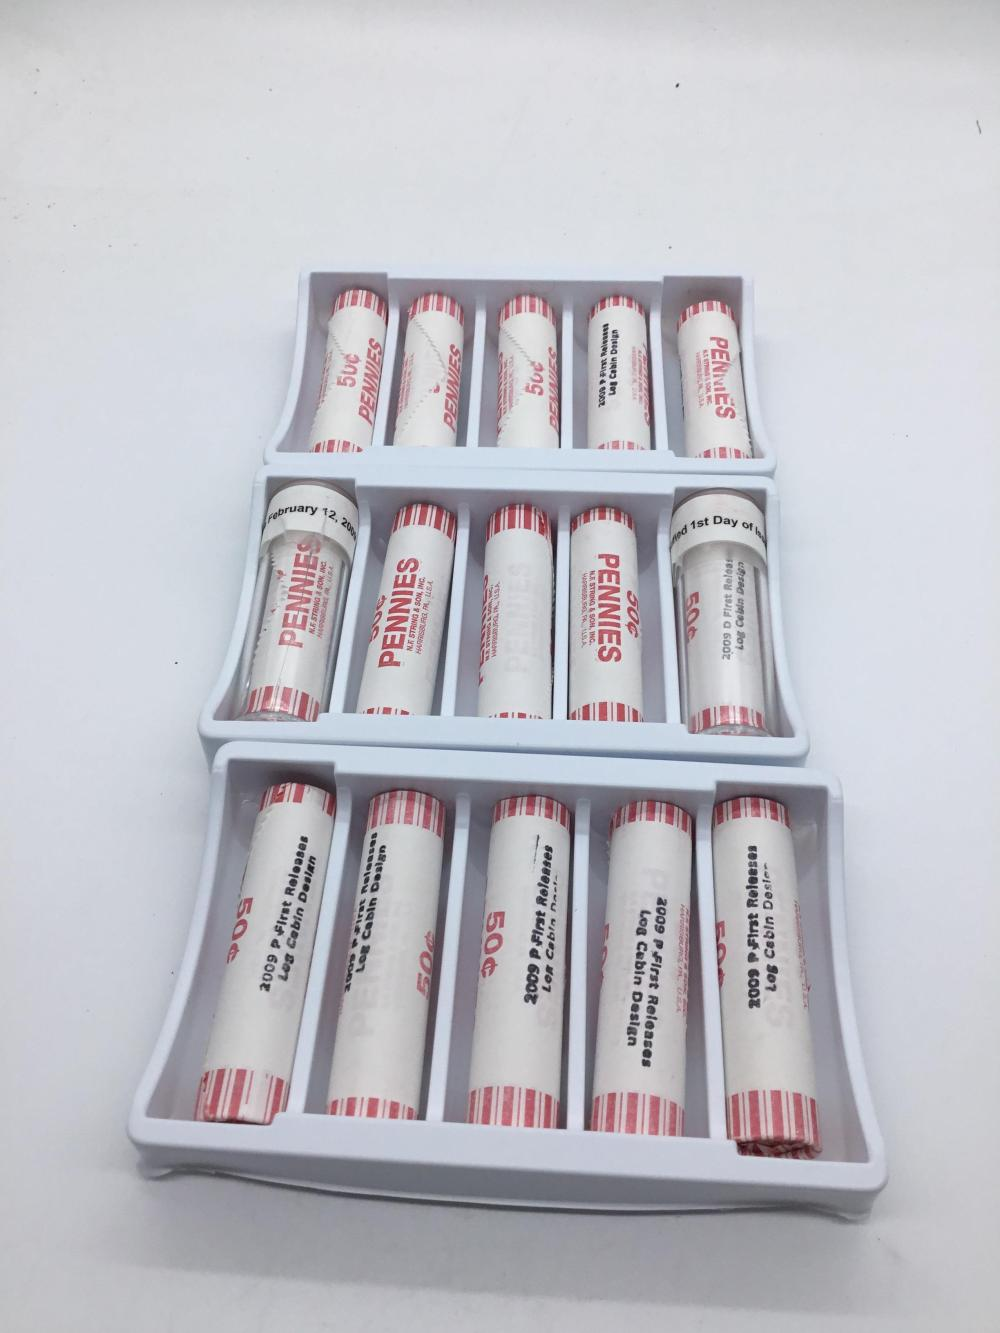 12 rolls of birth place cents